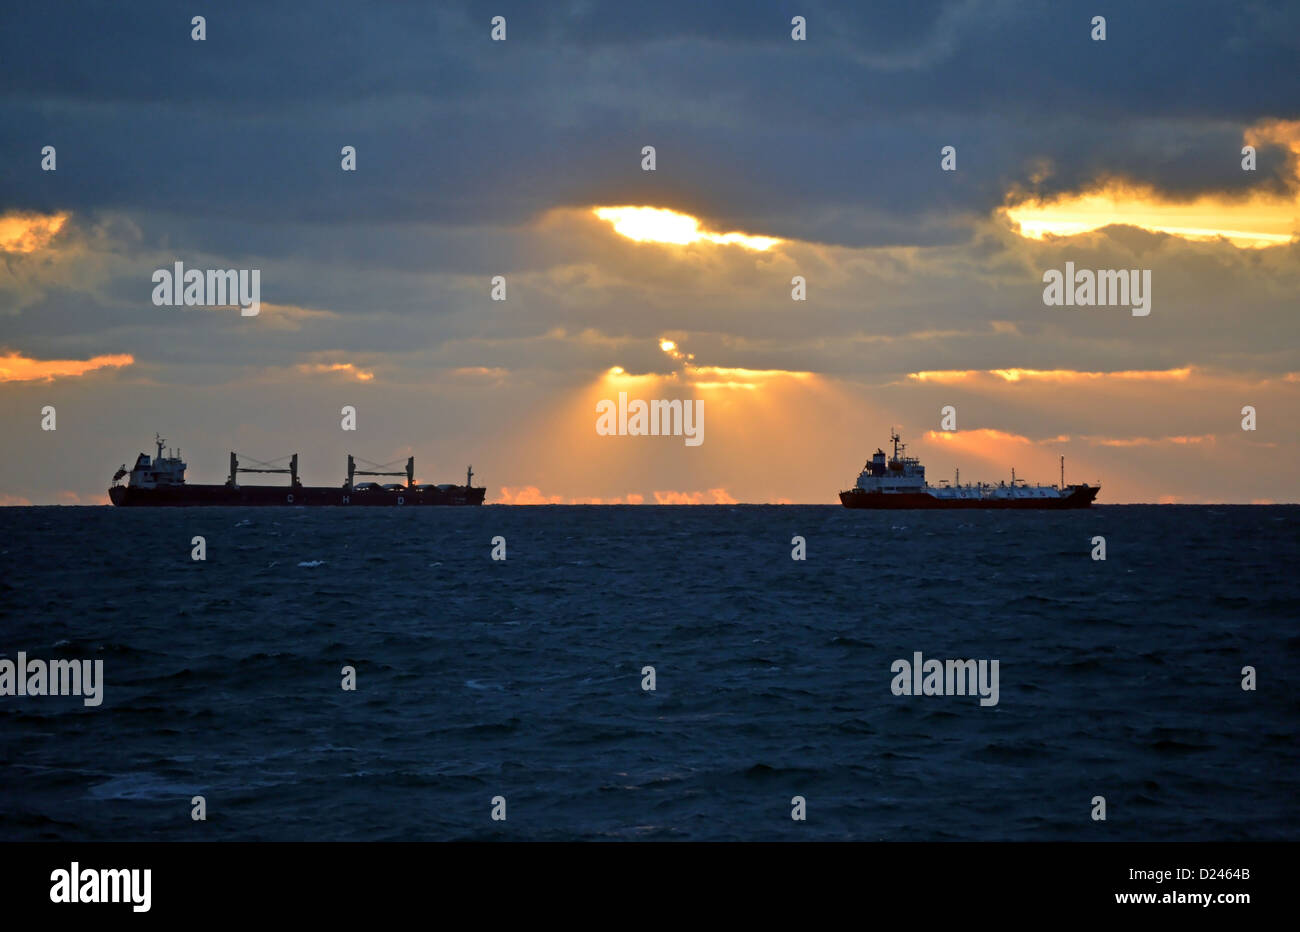 Sunrays over Ships - Stock Image